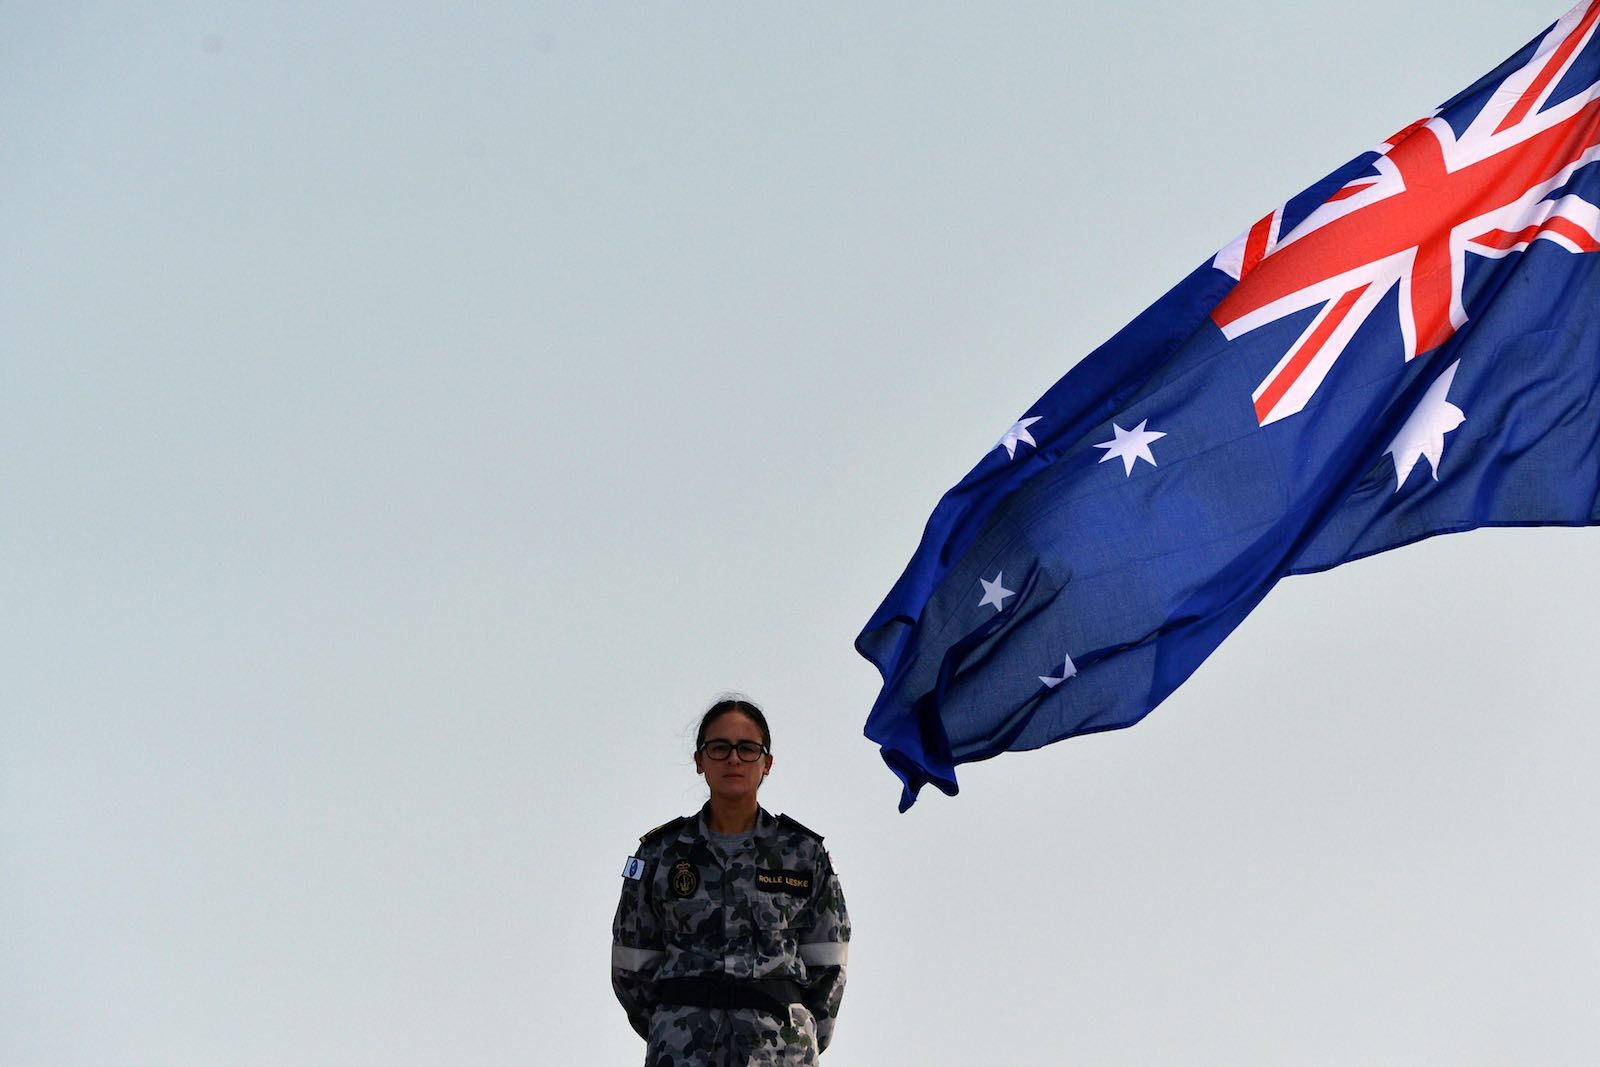 Australia's inclusion in the Malabar naval exercises would mean that all four members of the Quadrilateral Dialogue would be involved in war games in the Indo-Pacific (Ishara S. Kodikara/AFP/Getty Images)